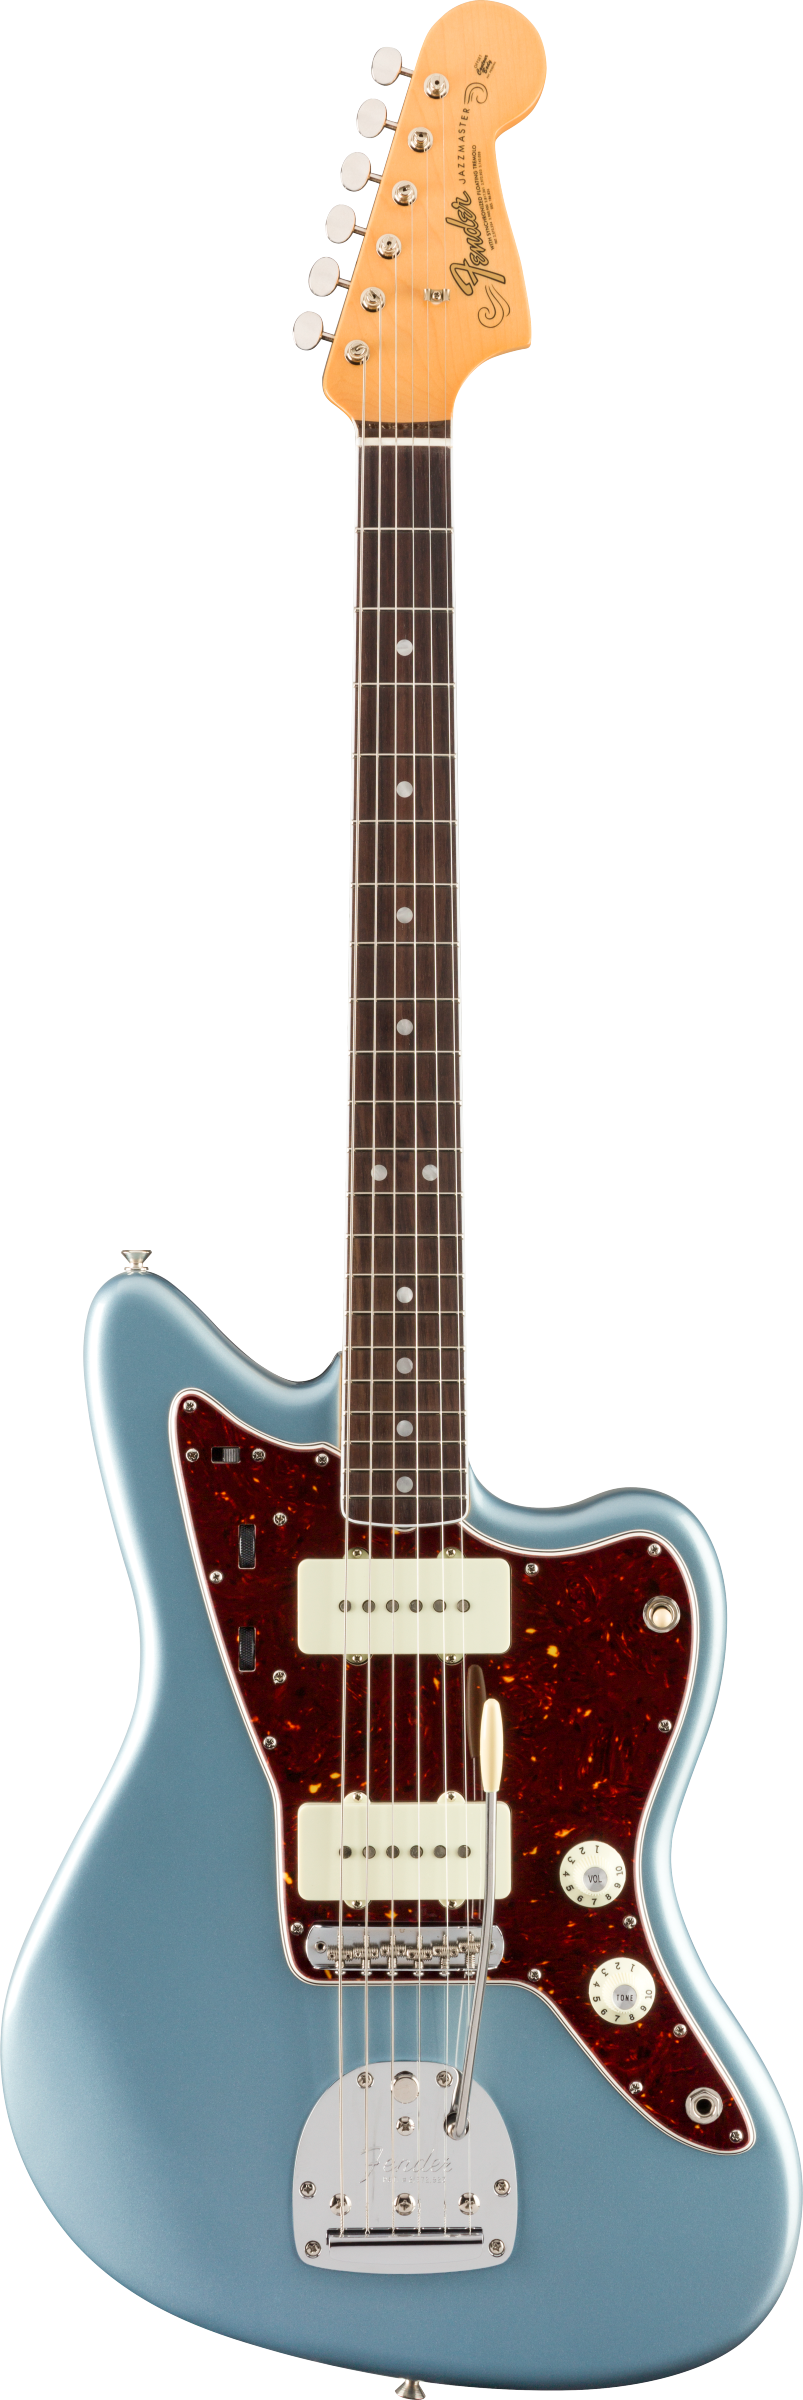 Fender American Original Jazzmaster Iced Blue Metallic RW - Regent Sounds